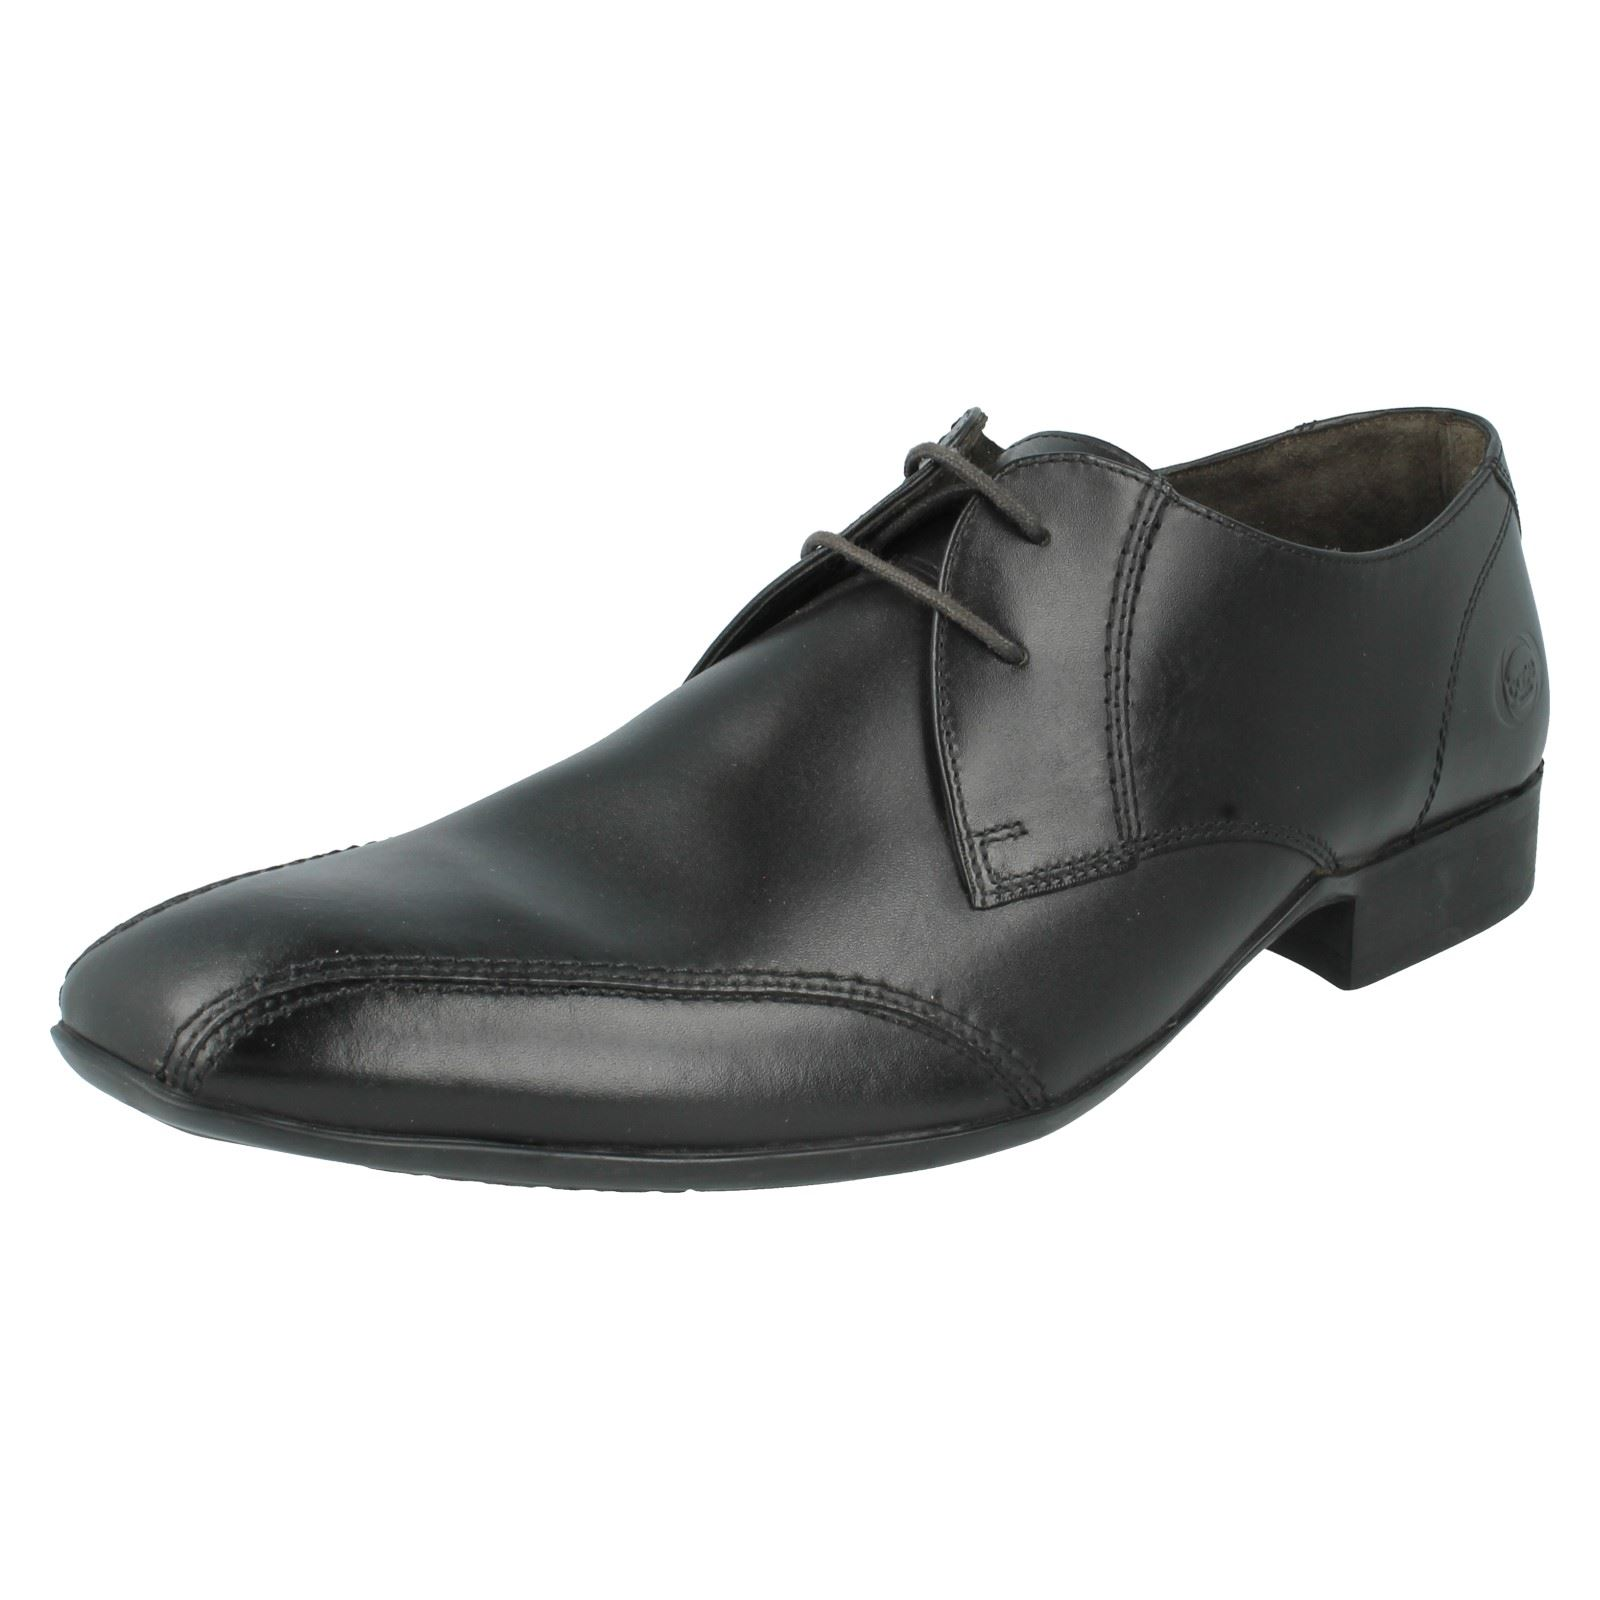 SALE Mens INDENT black leather lace up shoe by Base London Retail Price £35.00